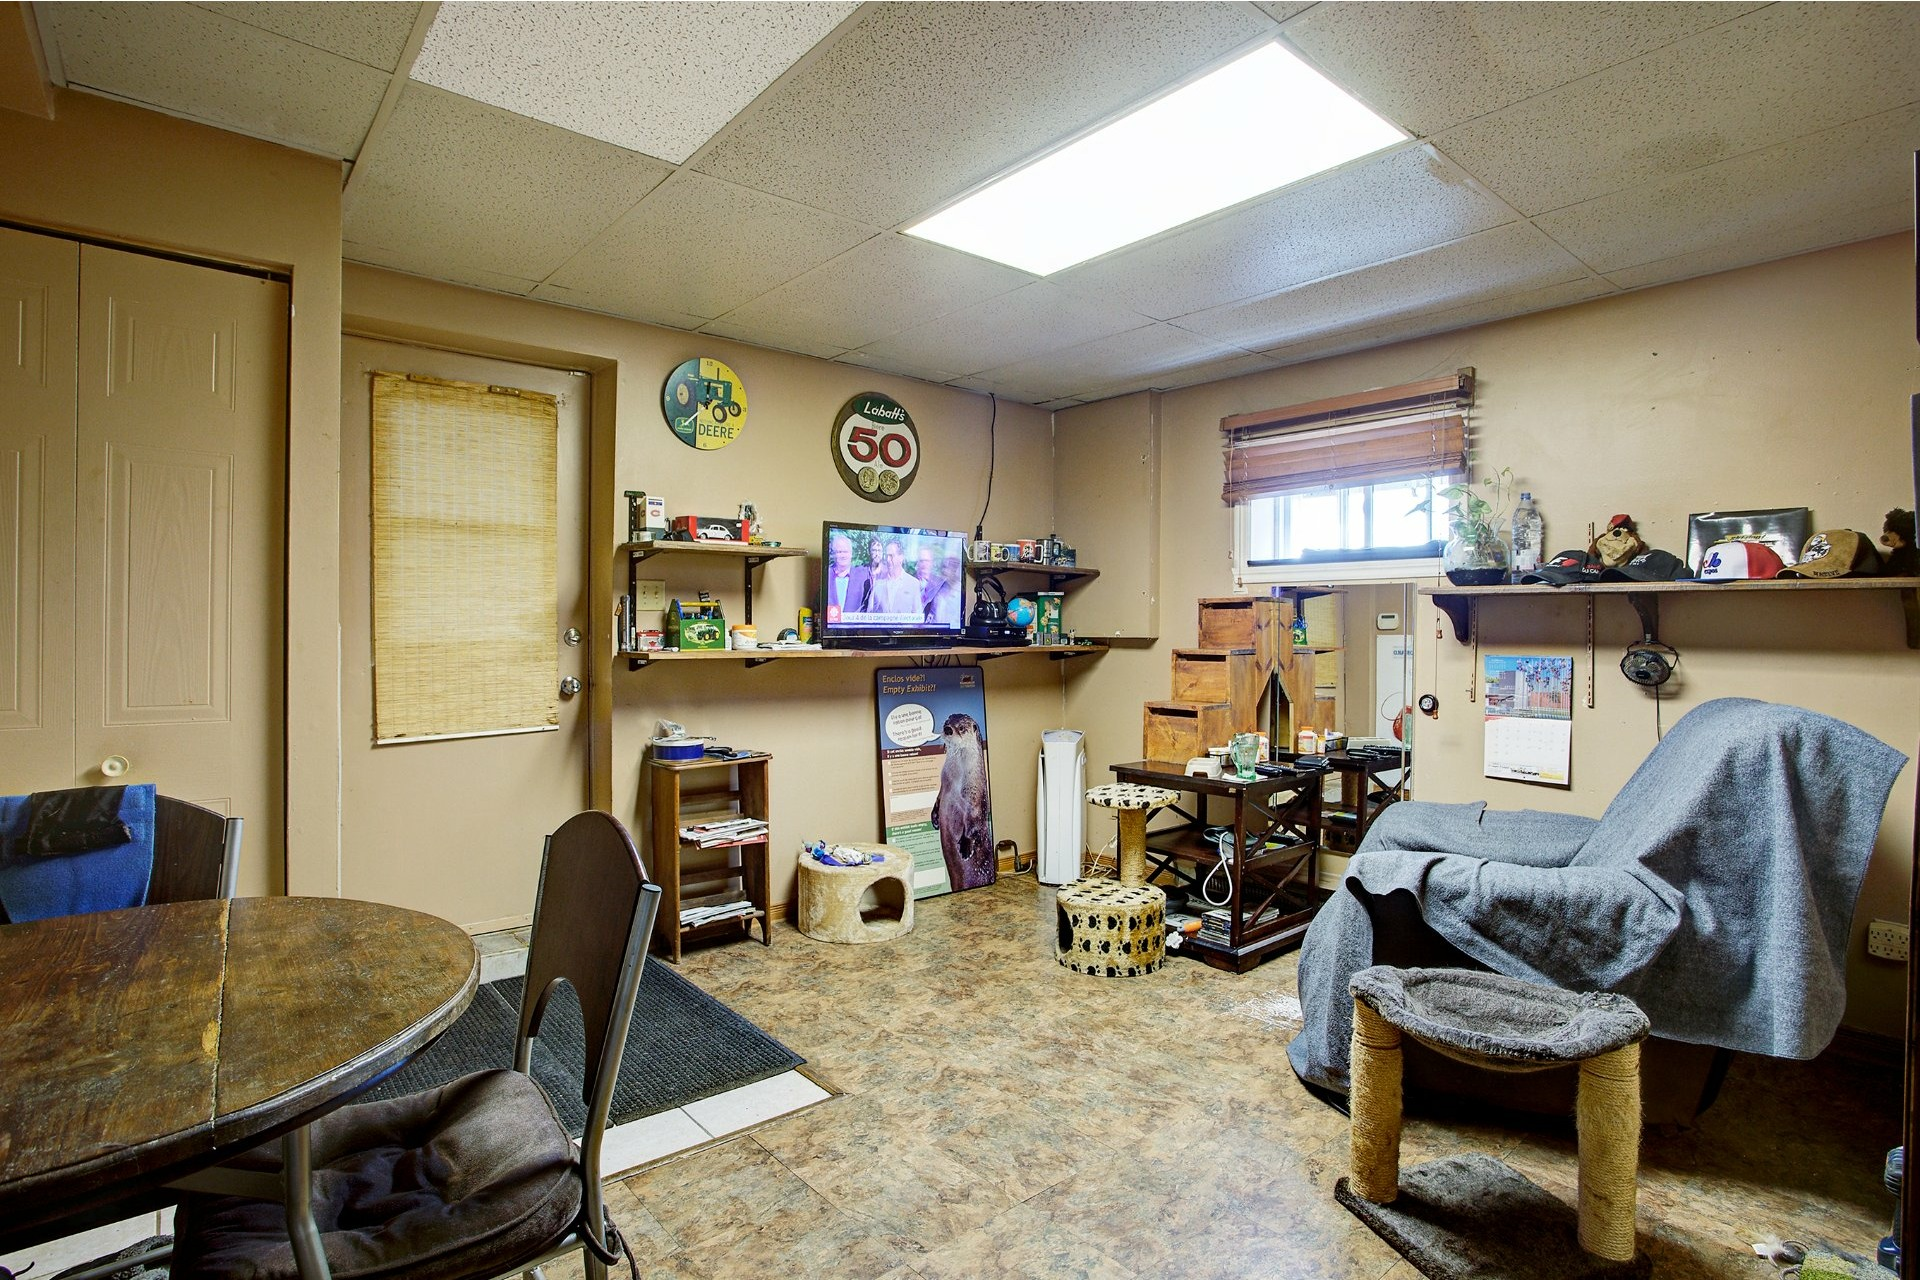 image 20 - House For sale Vaudreuil-Dorion - 10 rooms